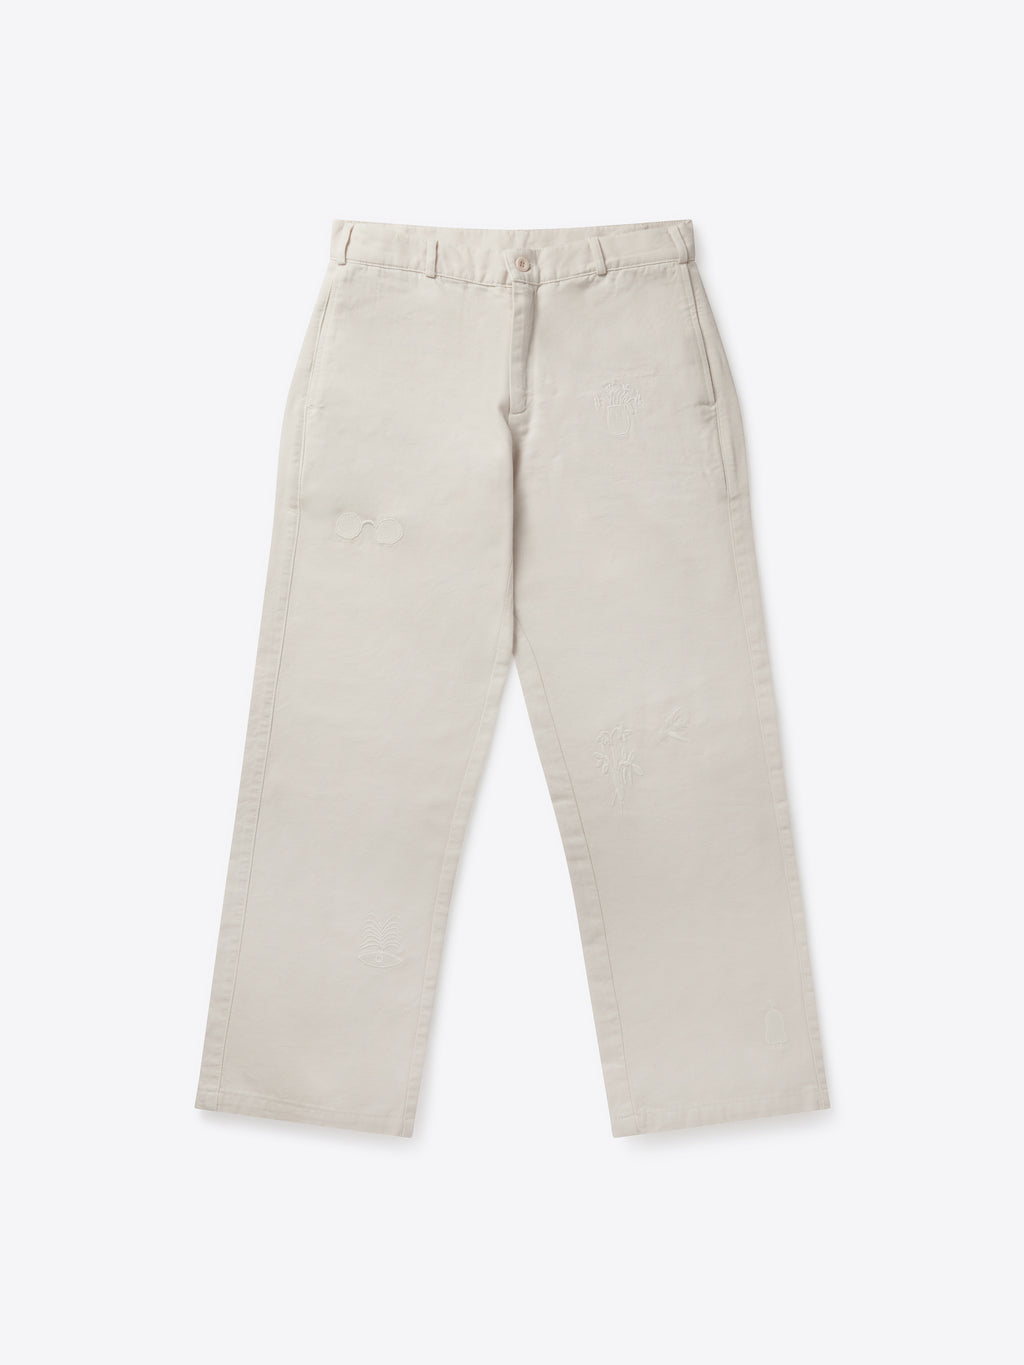 Pantalon de paix - Naturel